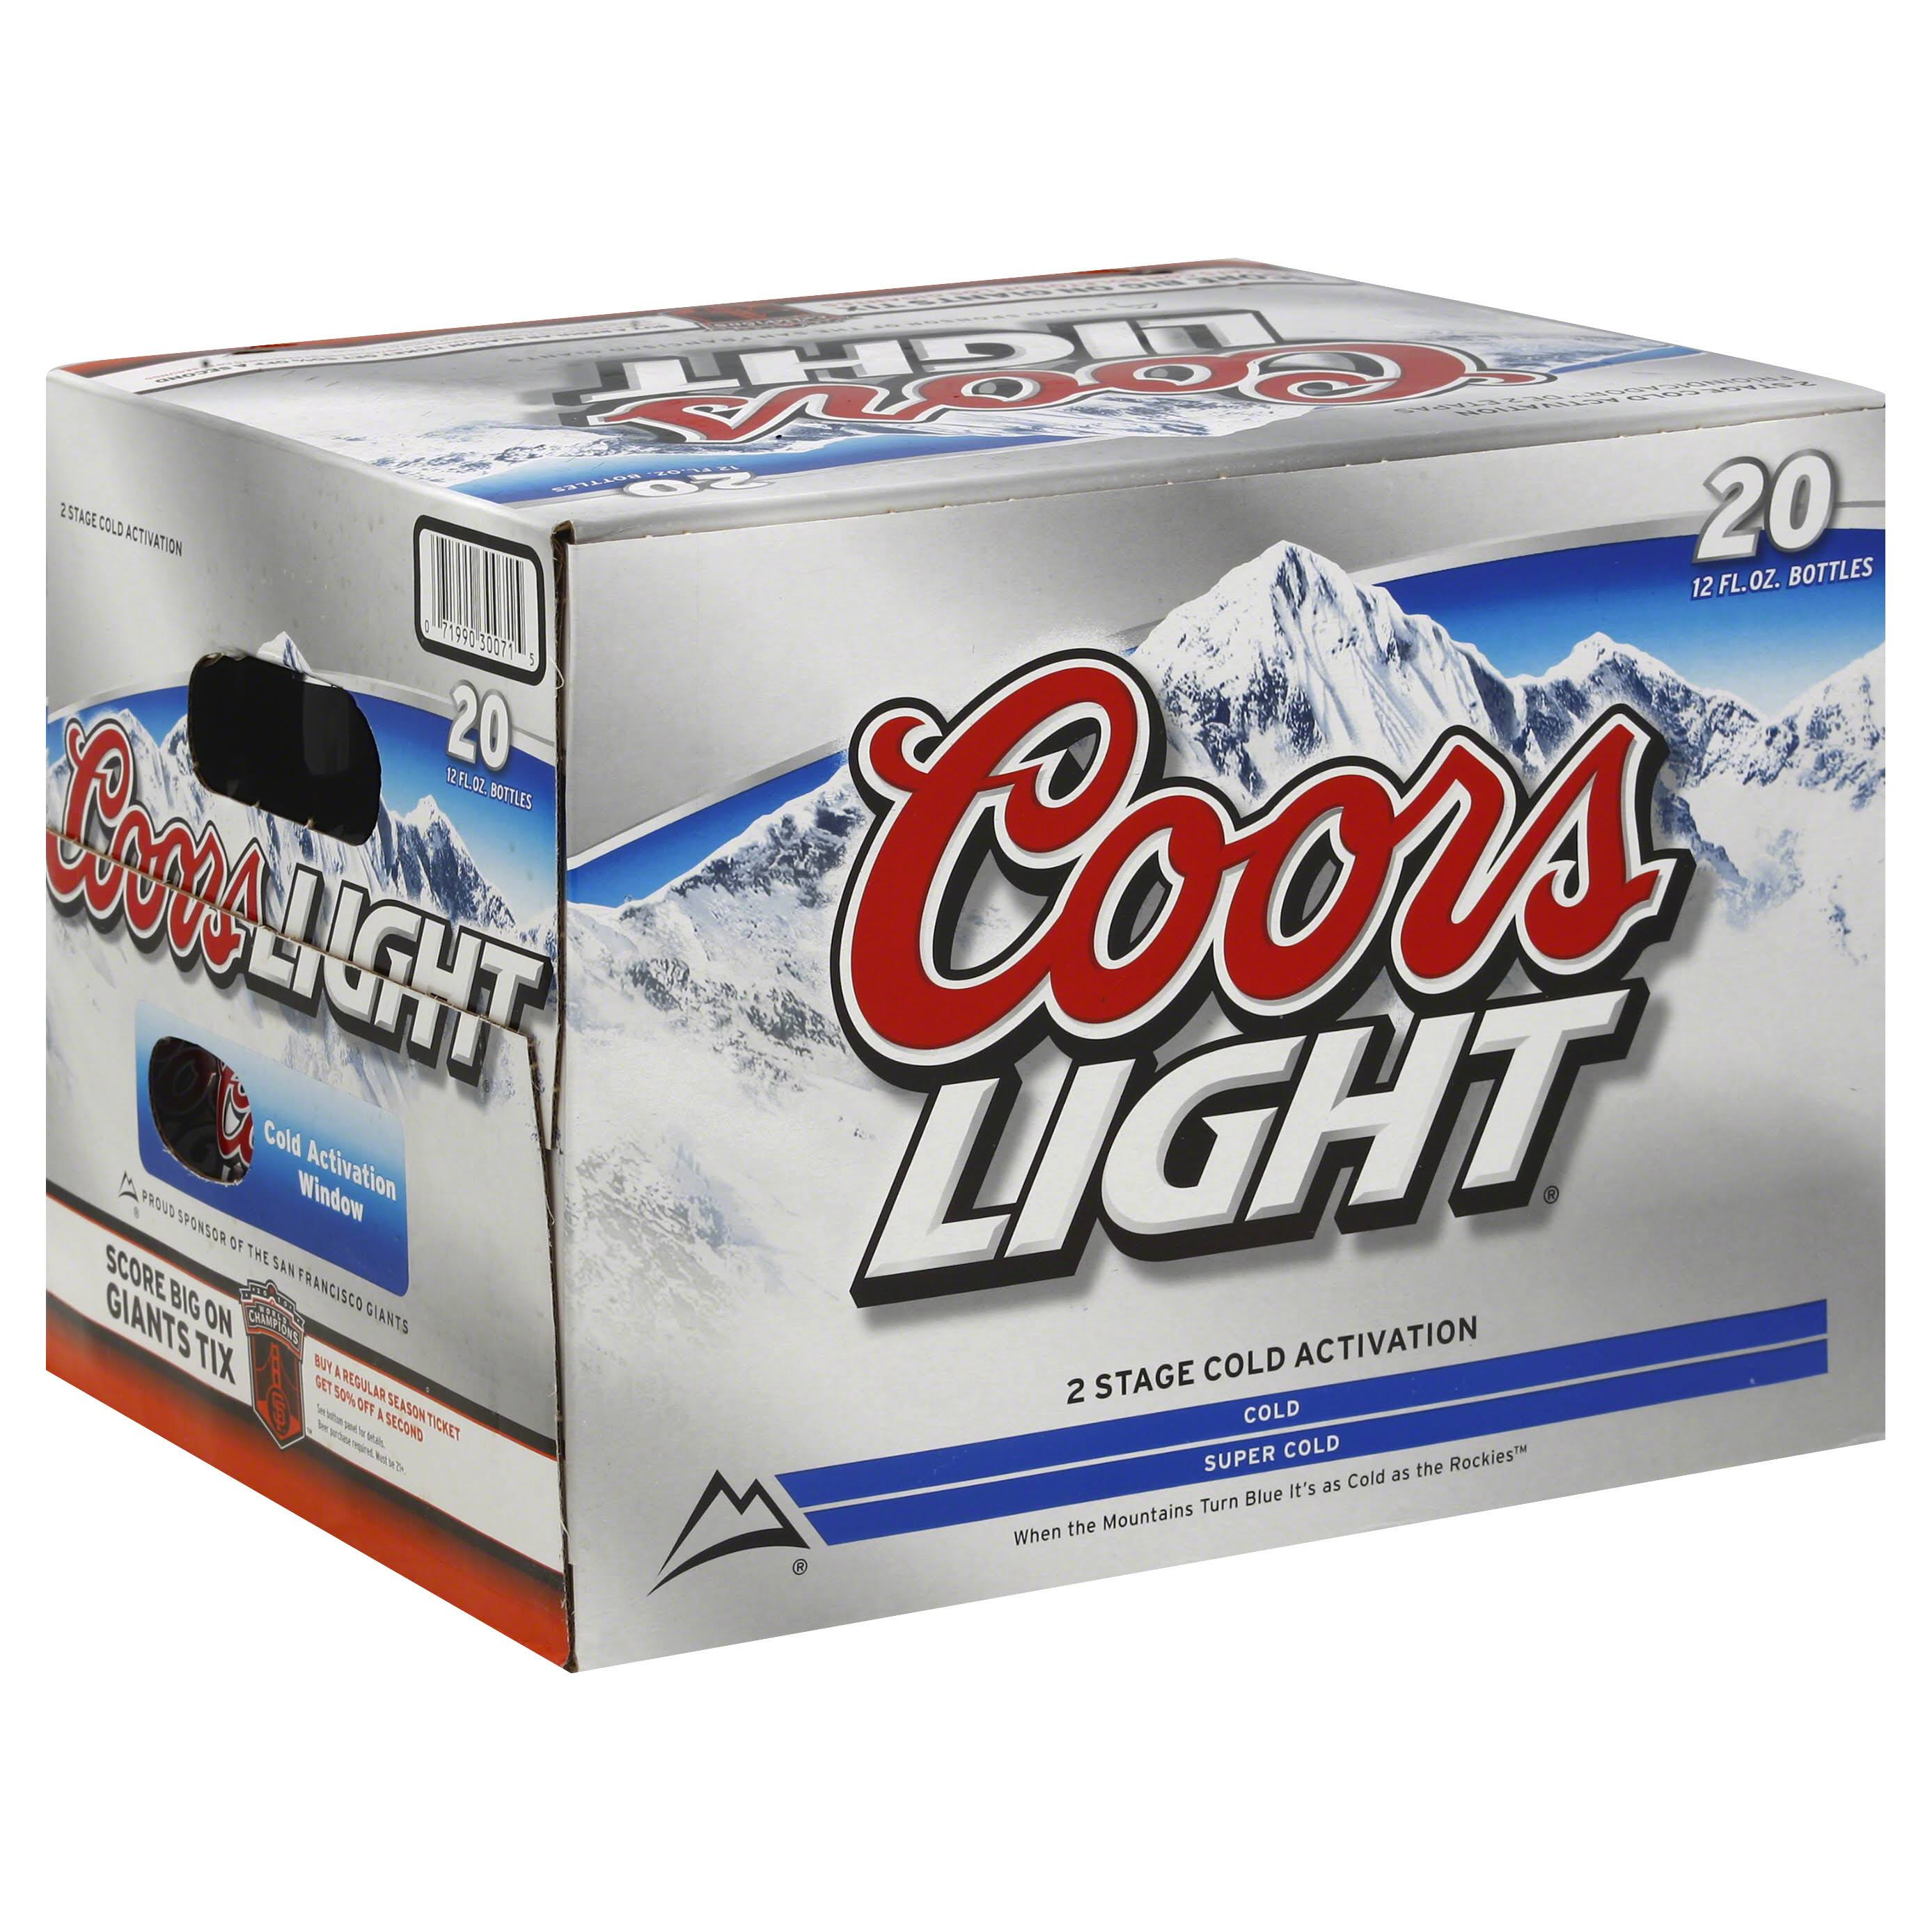 Coors Light Beer Bottles - 20 Pack